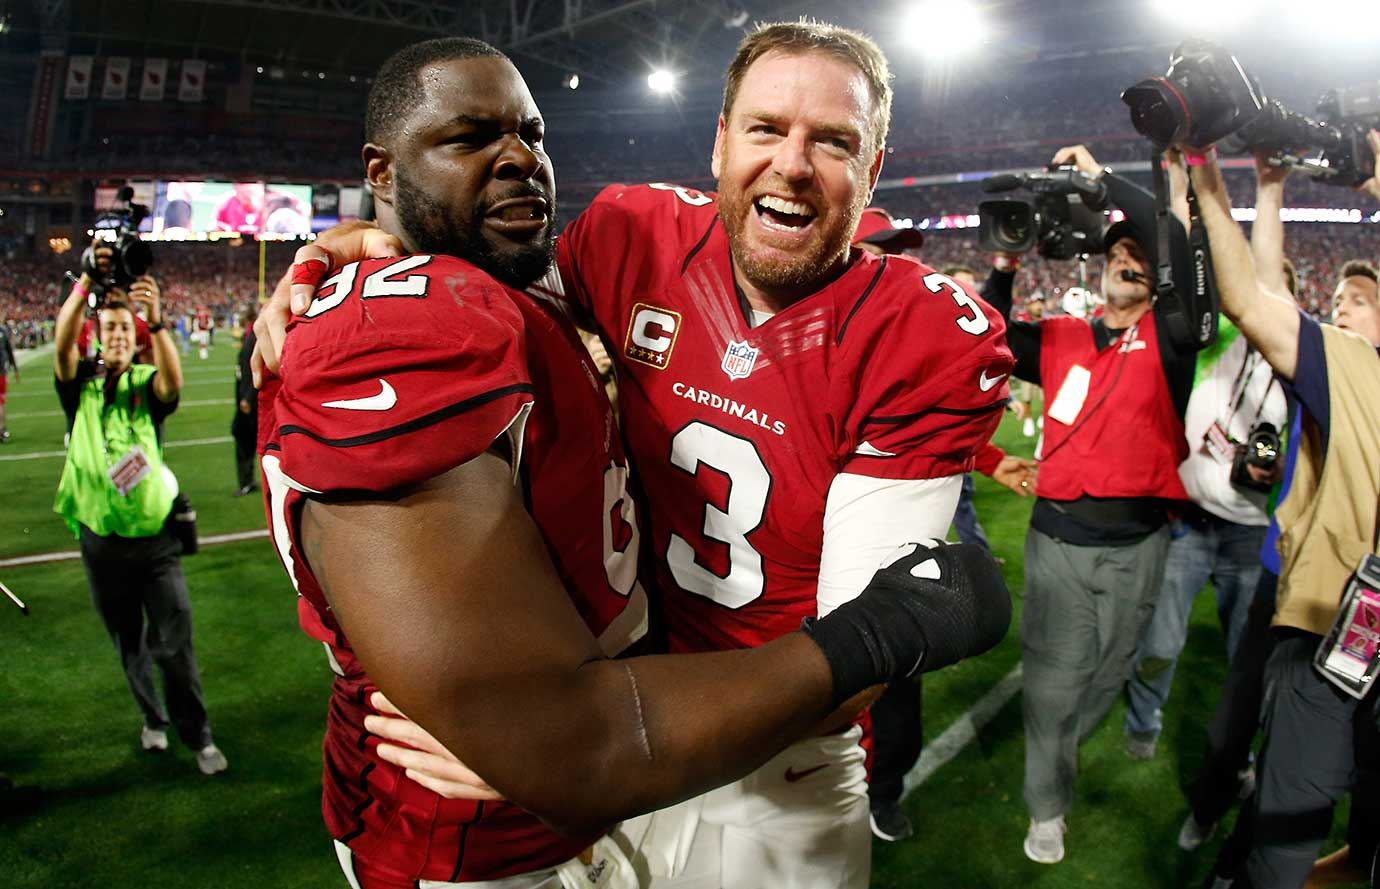 Carson Palmer and defensive end Frostee Rucker walk off the field victorious after an overtime win sent them to a NFC Championship Game matchup against the Carolina Panthers. Palmer pulled off a five-yard shovel pass to Larry Fitzgerald for the decisive touchdown in overtime.